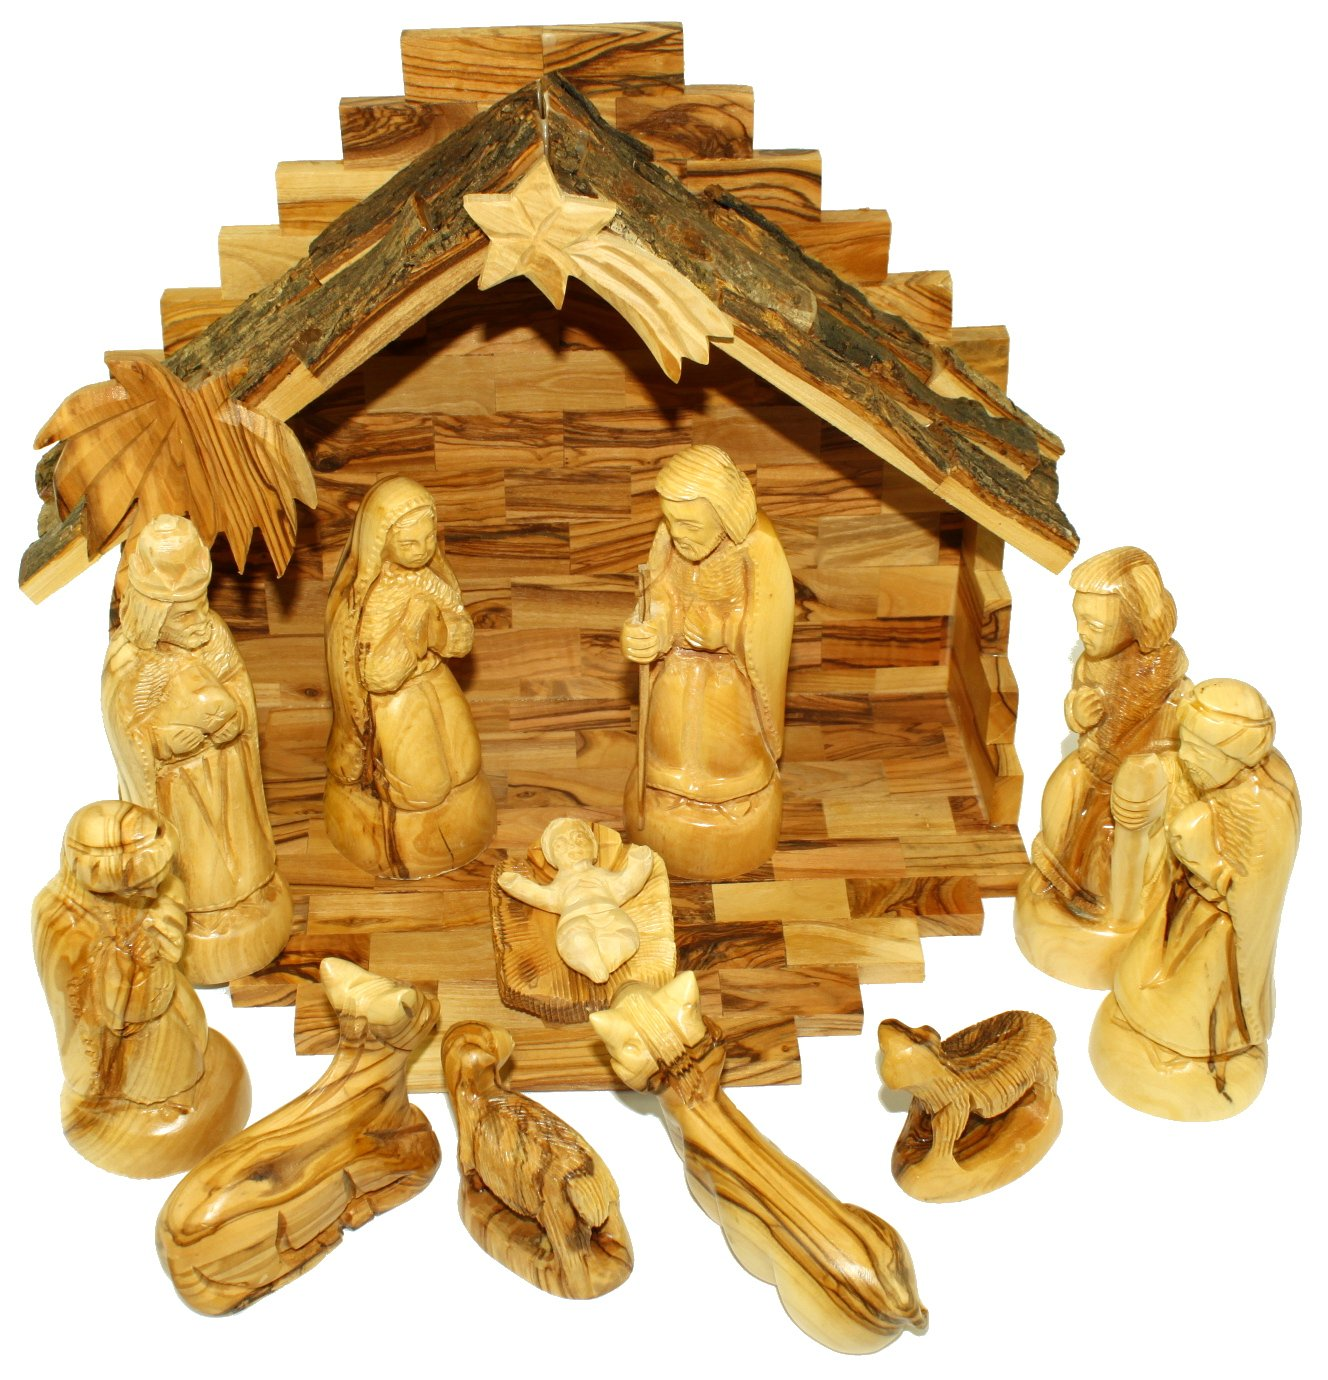 Holy Land Market Olive Wood Nativity Set - Traditional Carving